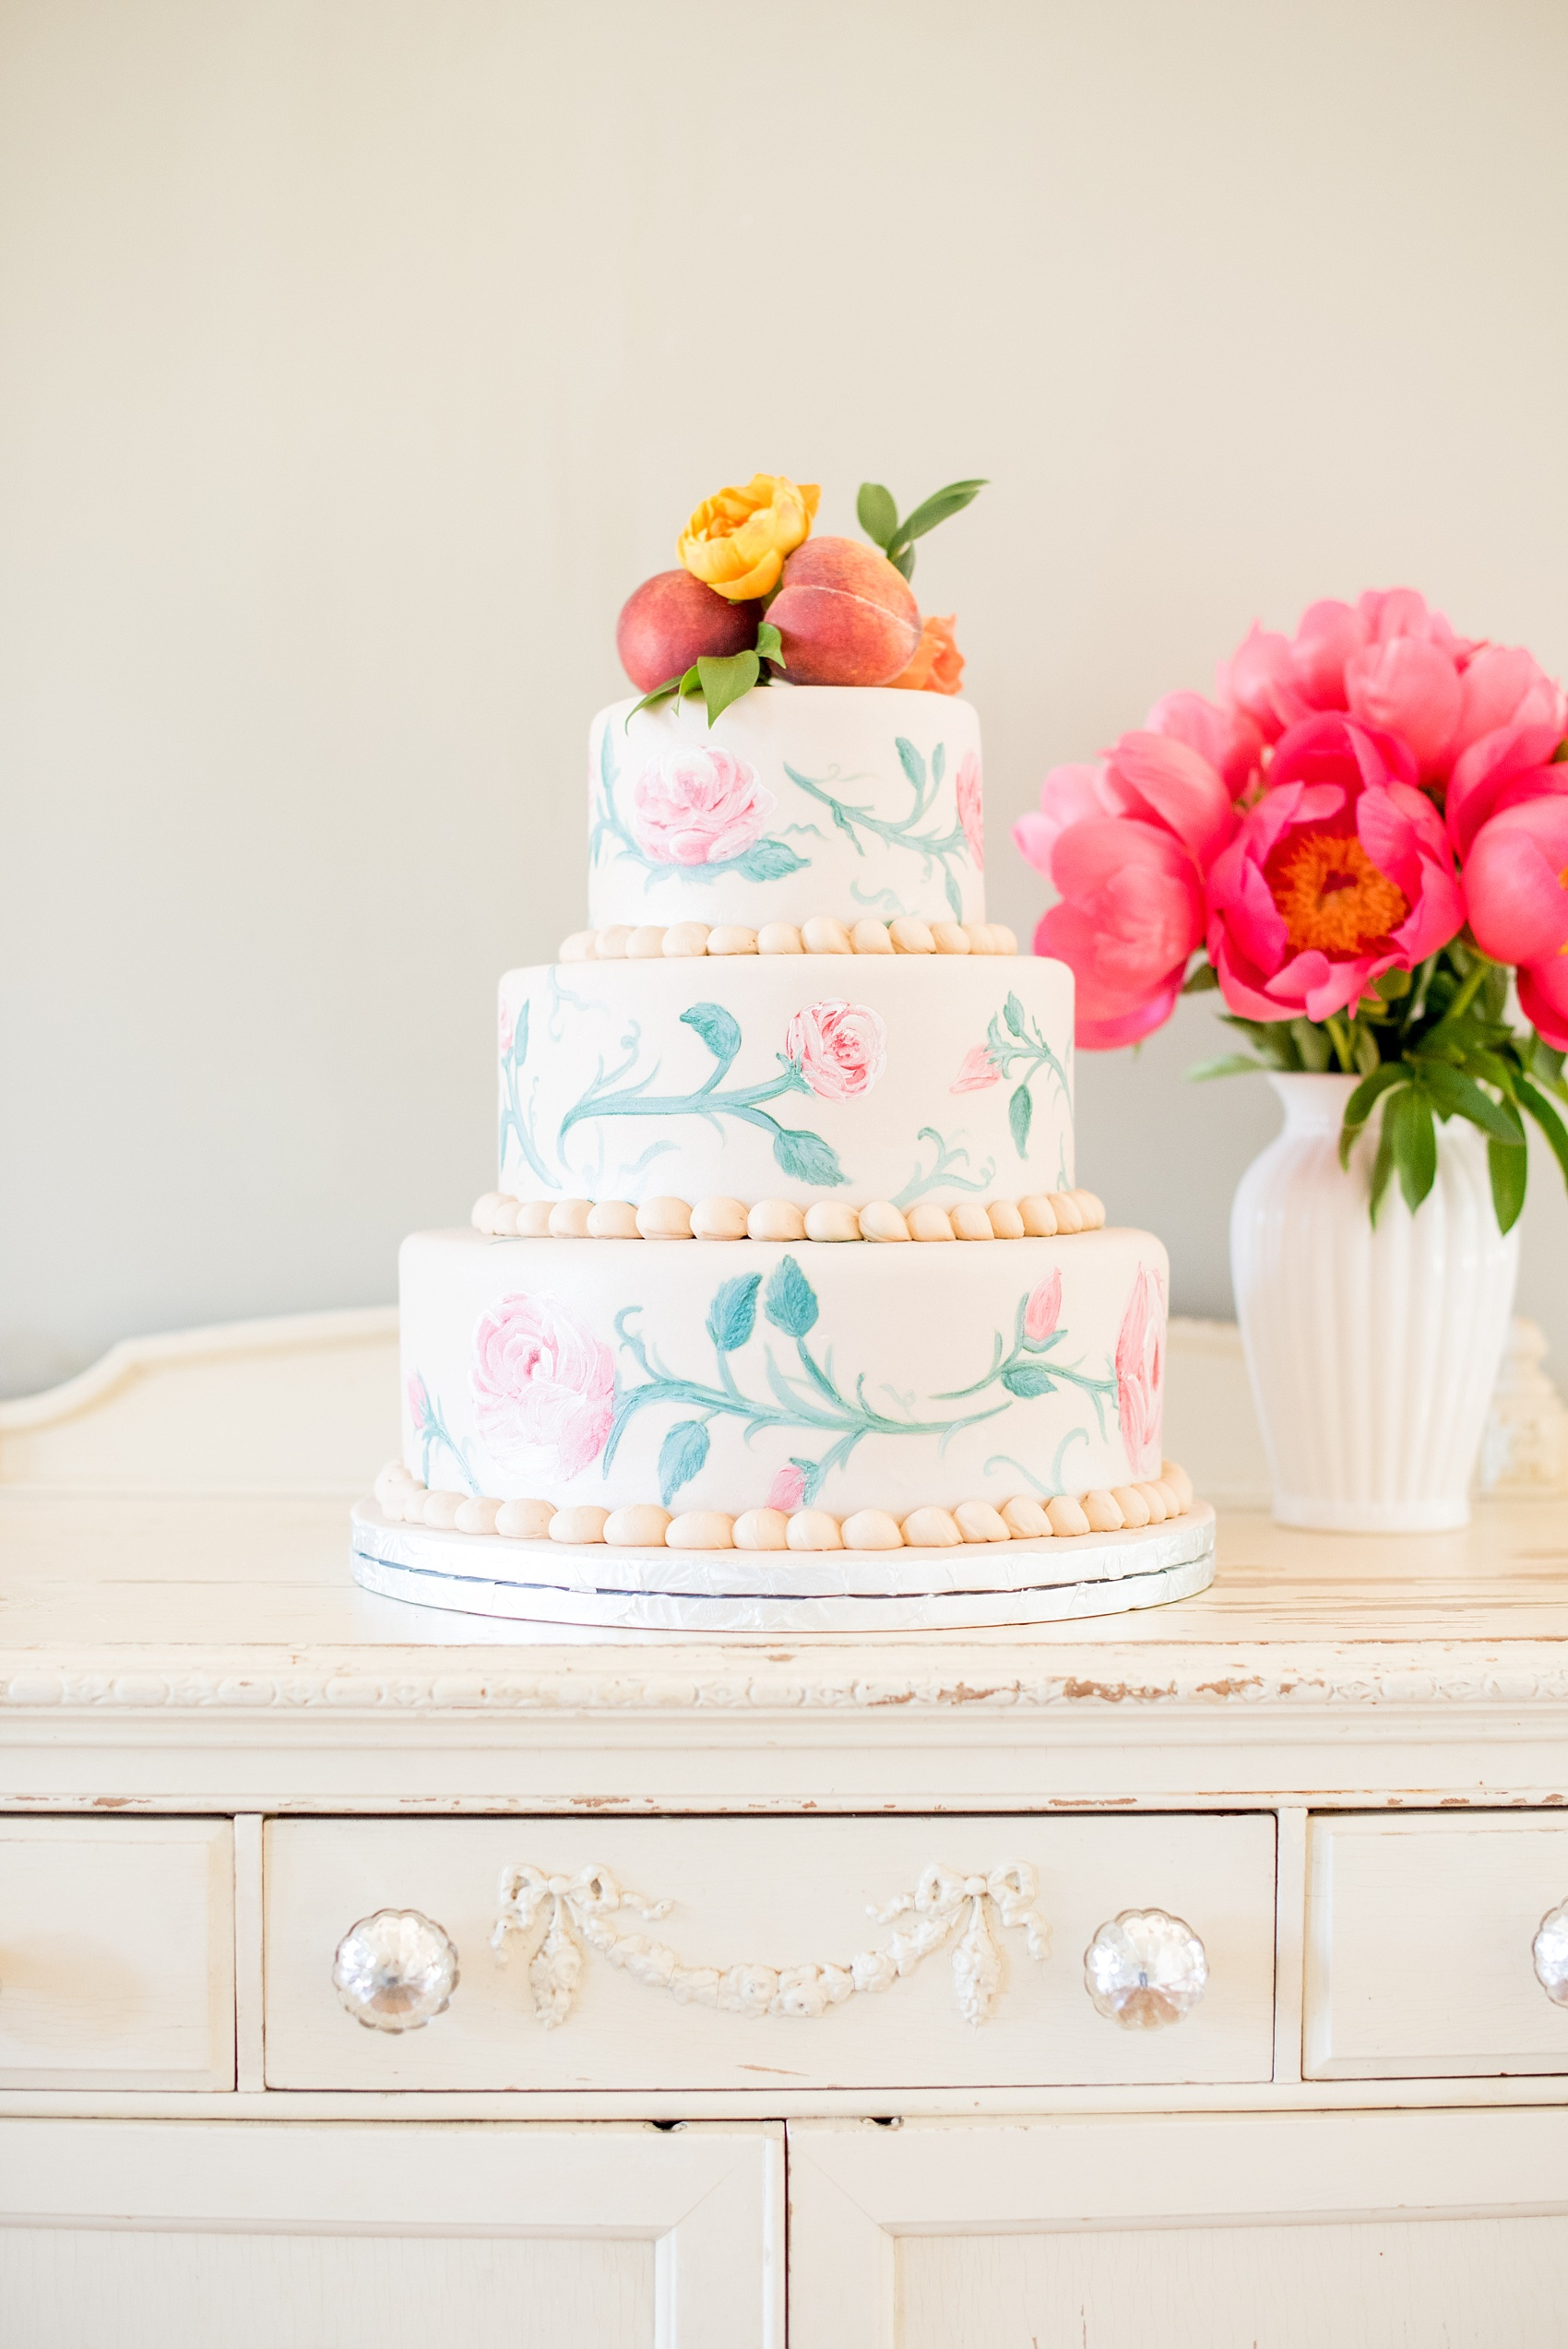 Mikkel Paige Photography photo at The Bradford, NC. Edible art tiered wedding cake in ivory fondant and hand painted pink roses and vines, topped with peaches and yellow ranunculus flower.